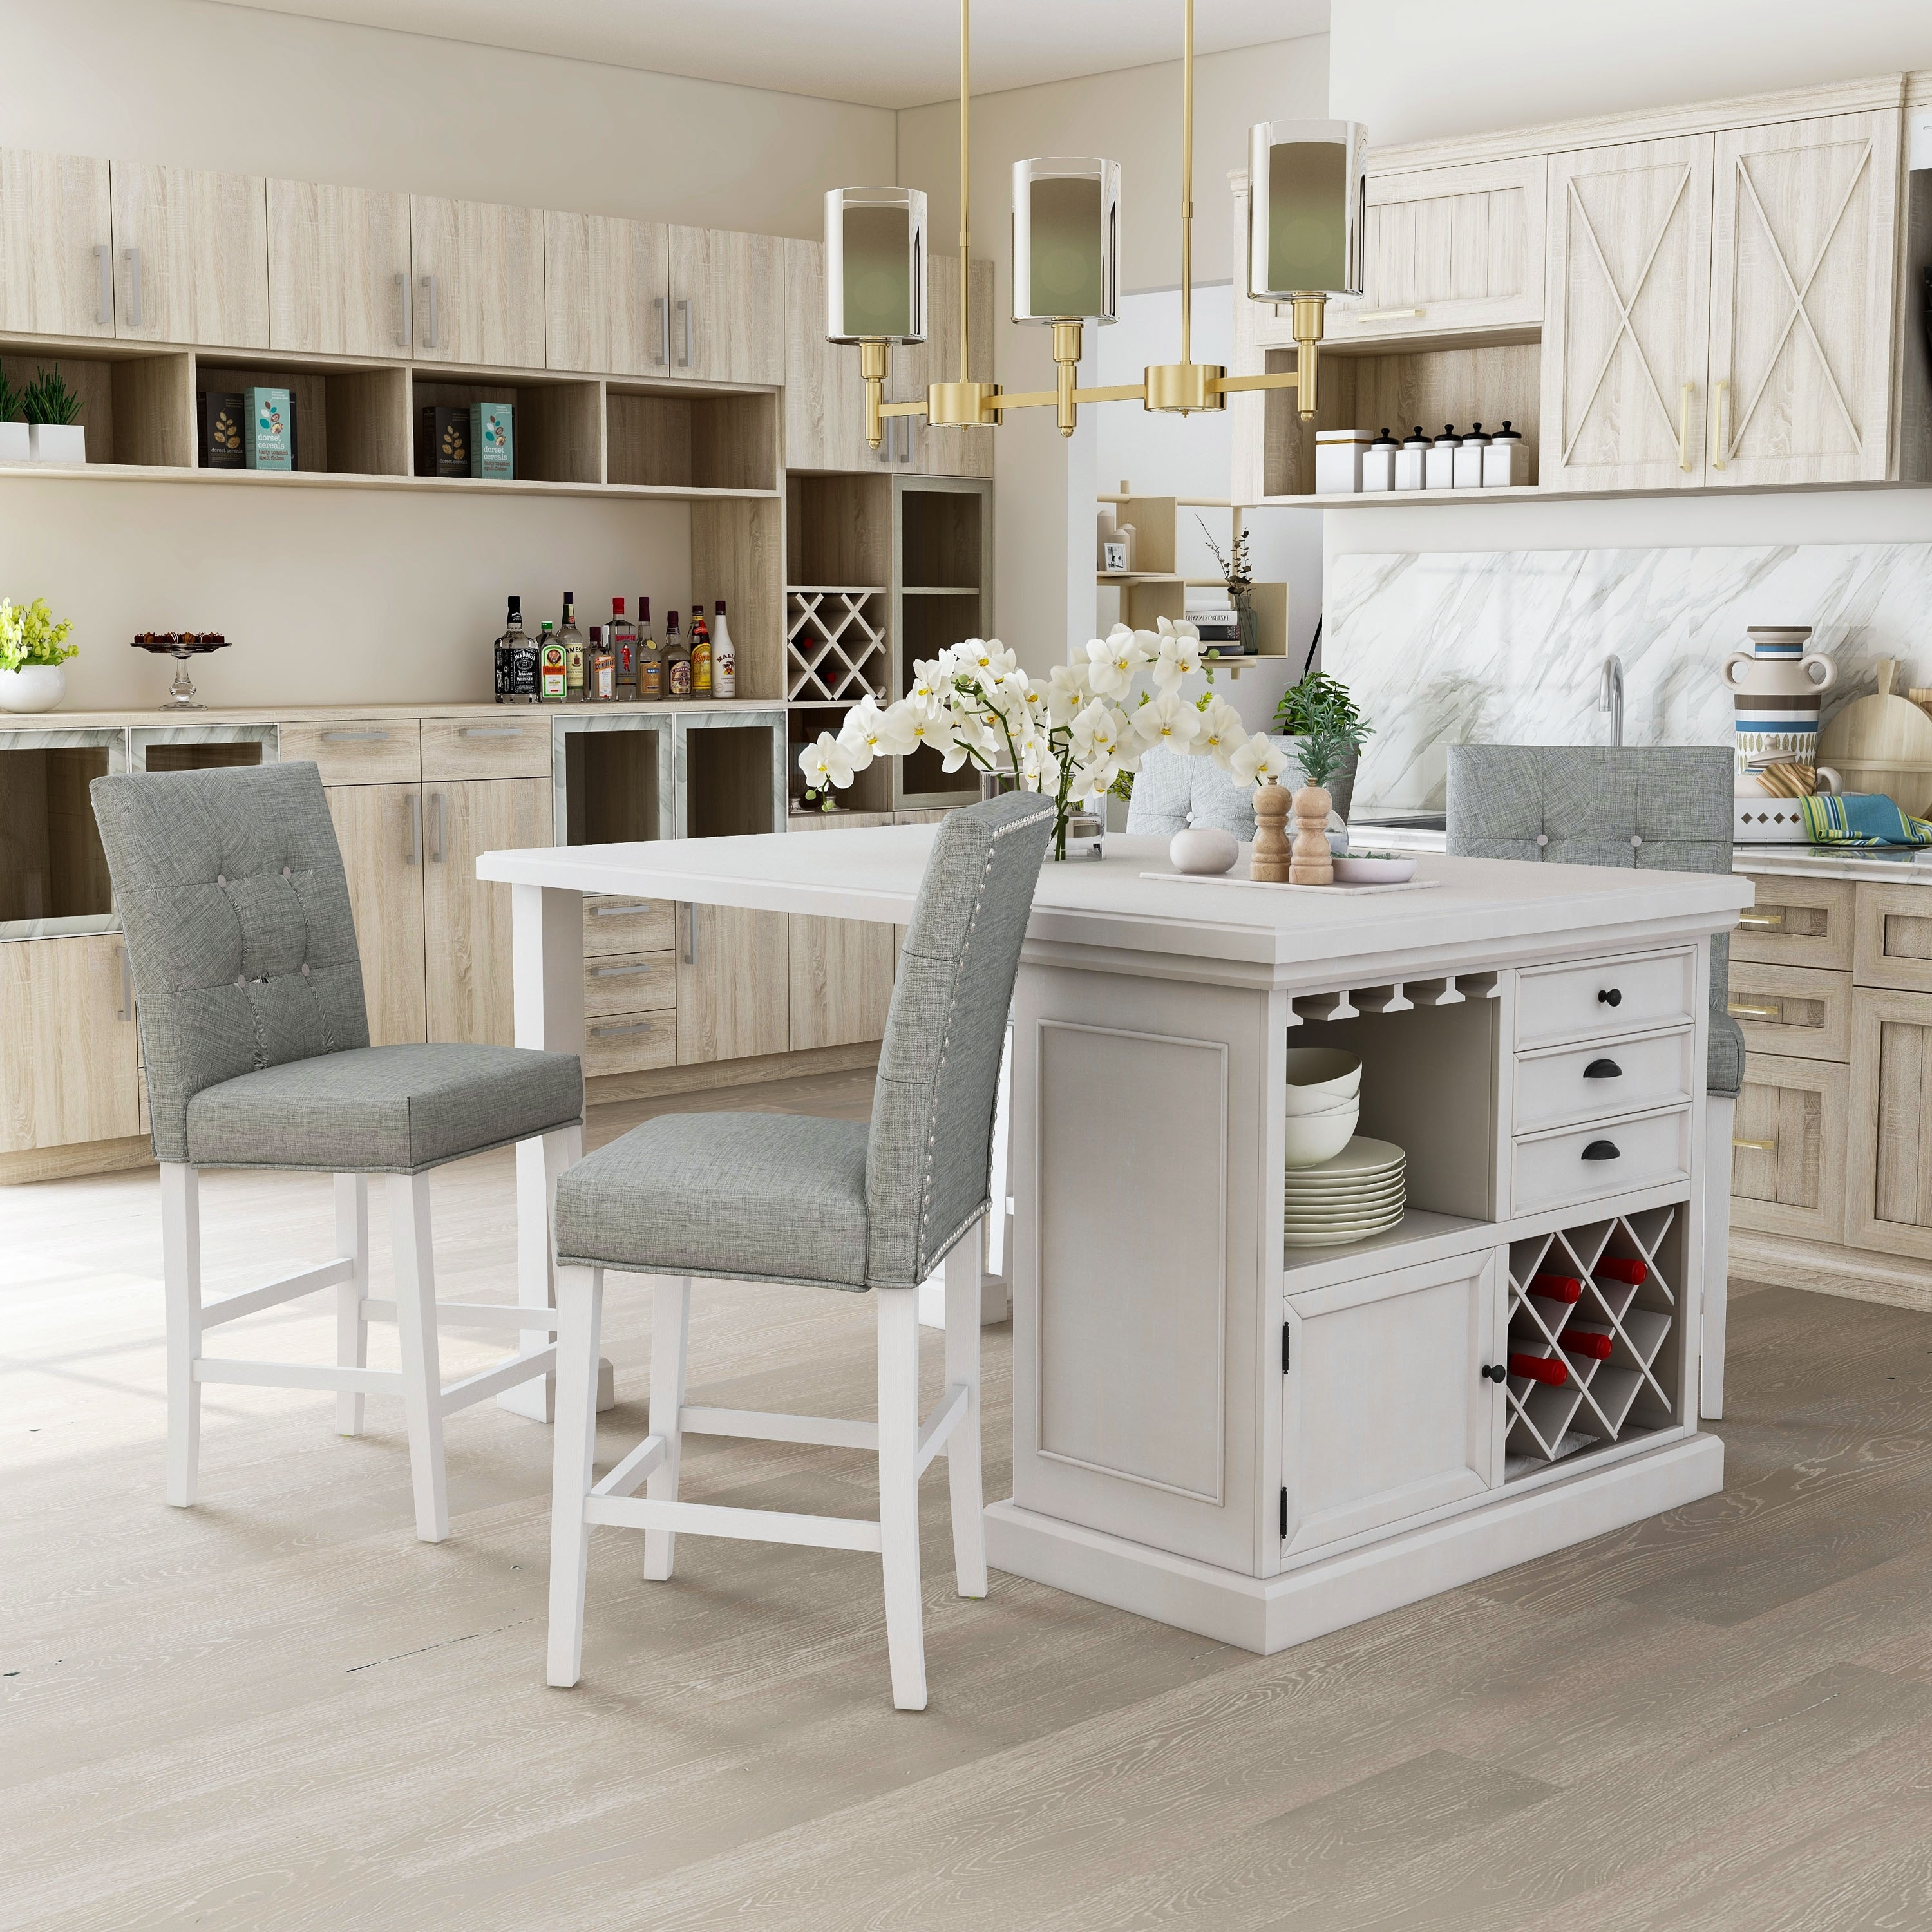 Furniture Of America Transitional White 5 Piece Kitchen Island Set On Sale Overstock 20324370